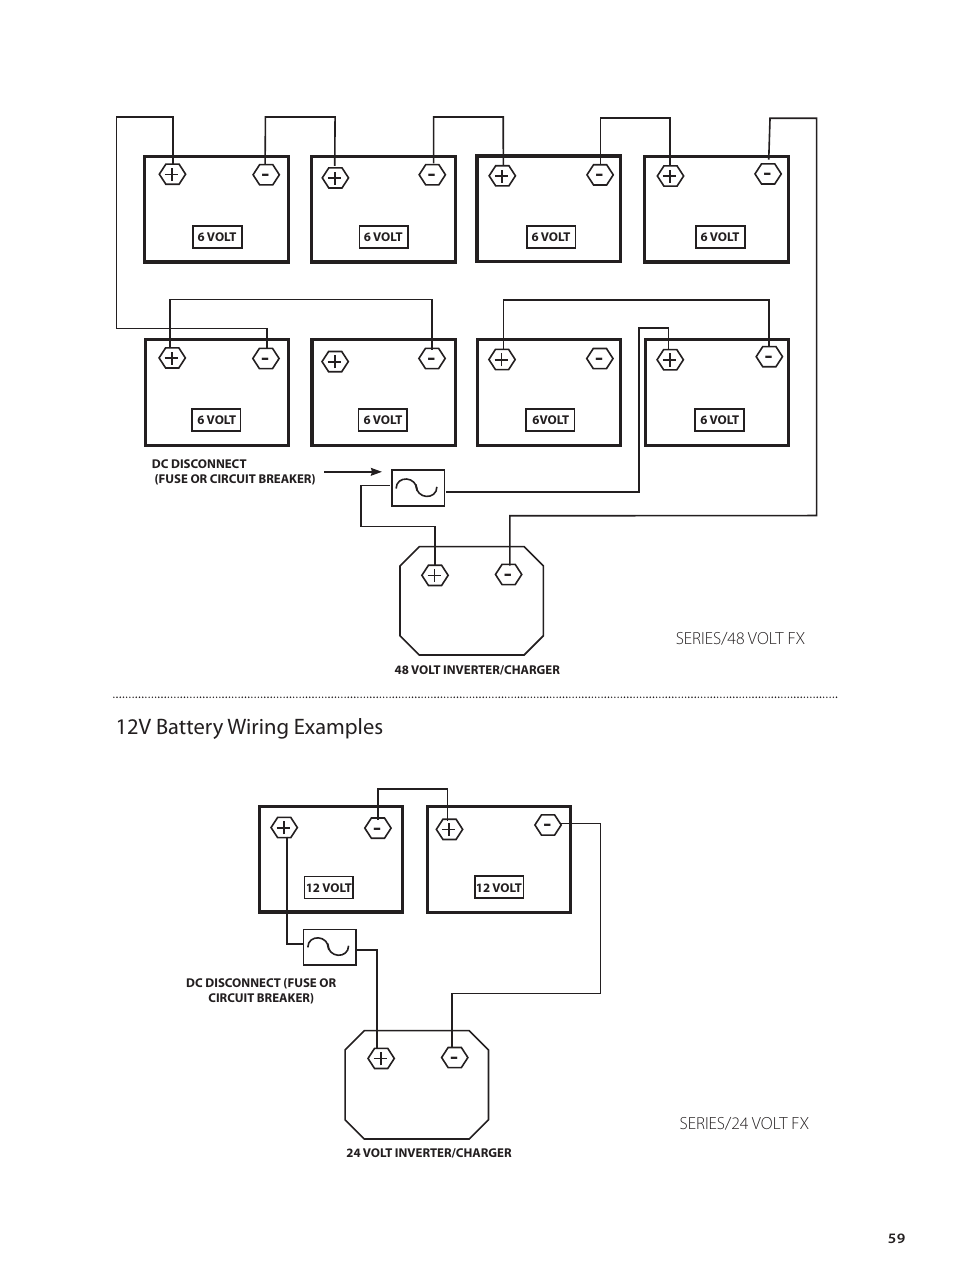 12v Battery Wiring Examples Outback Power Systems Gvfx Series Inverter Charger Diagram Installation Manual User